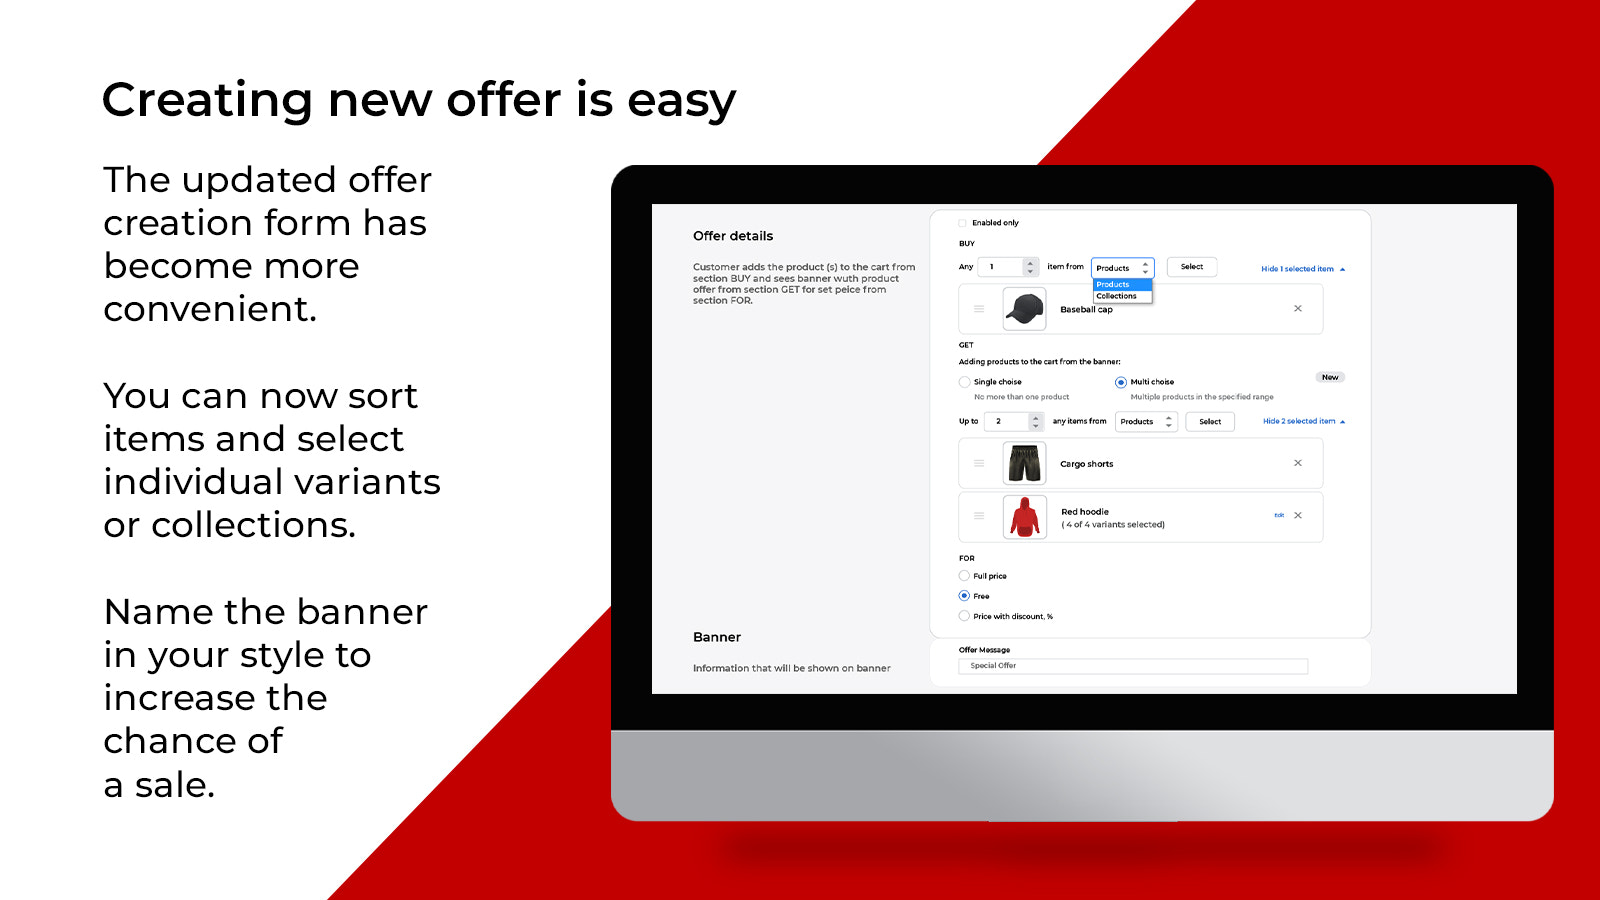 Creating offers